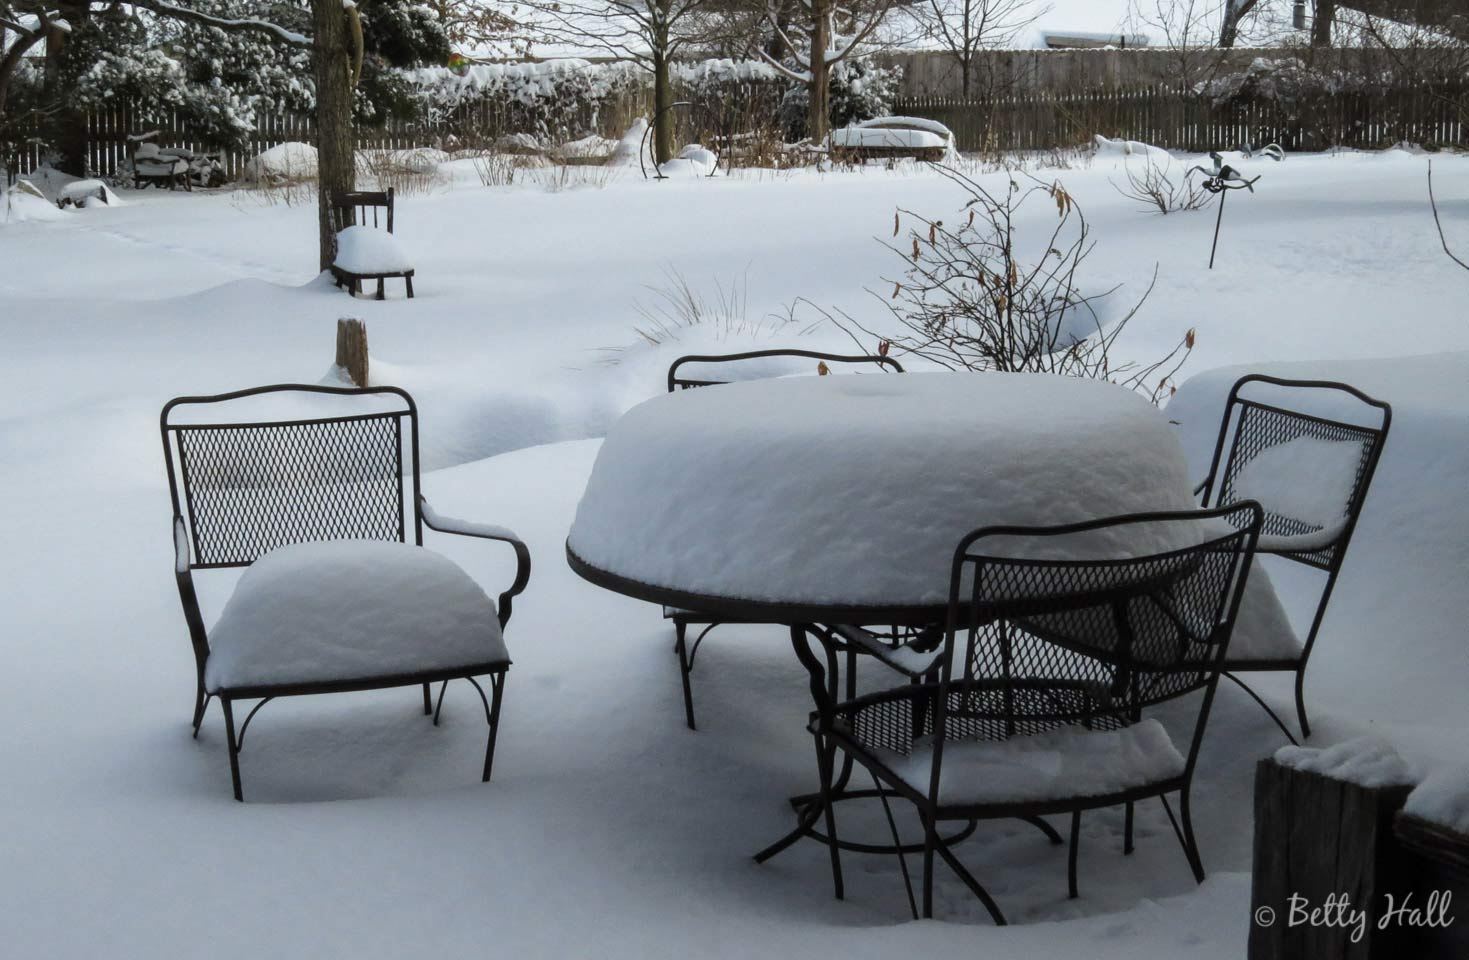 Patio and big snow